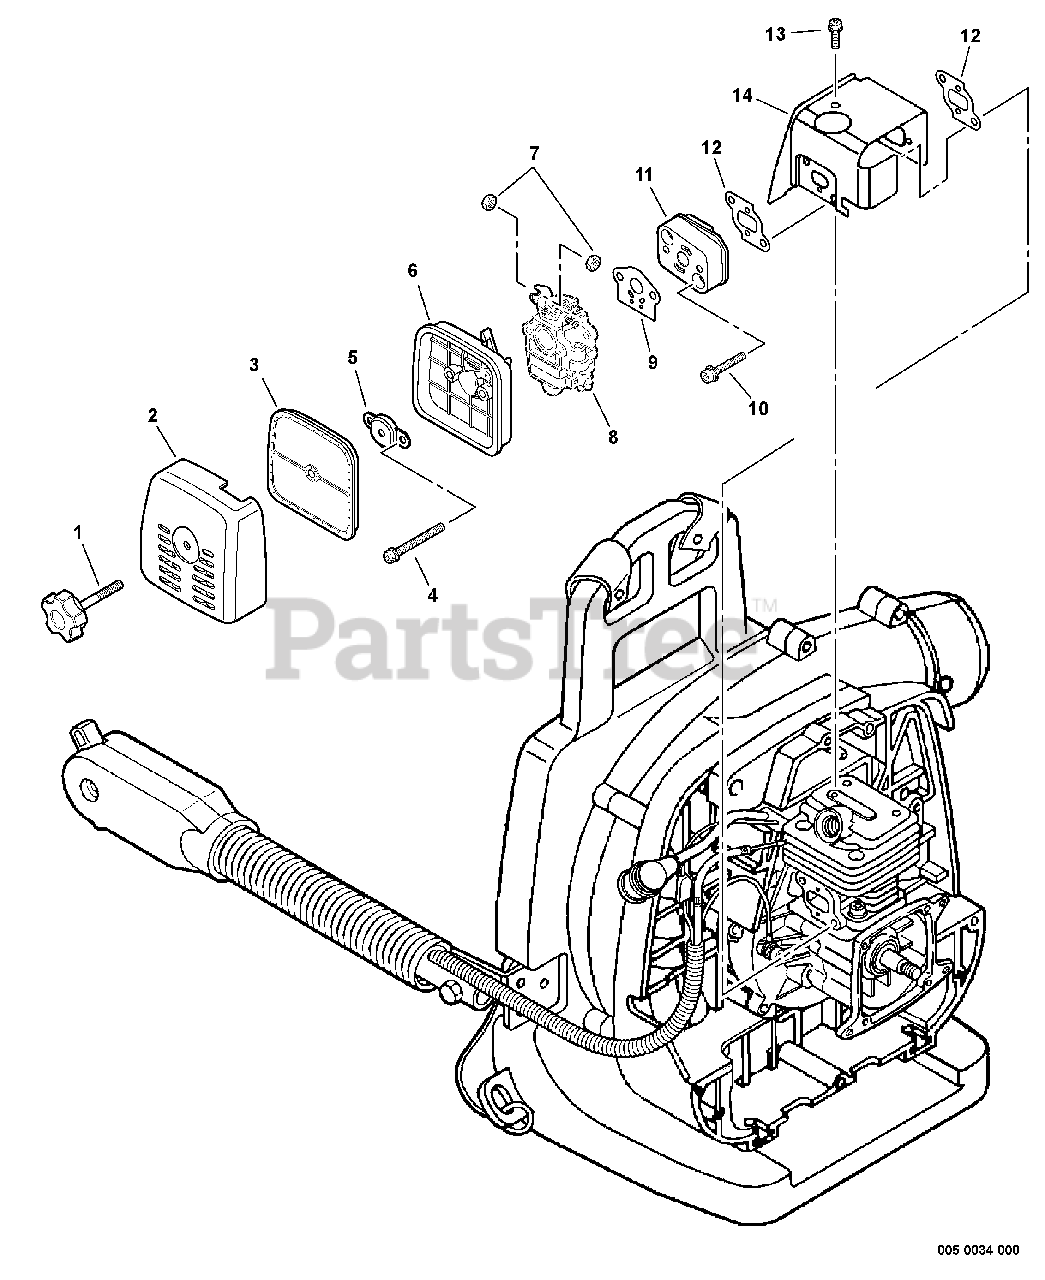 Echo PB-260L - Echo Backpack Blower Parts (SN: 07001001 - 07999999) Intake,  Cylinder Cover Parts Lookup with Diagrams | PartsTreePartsTree